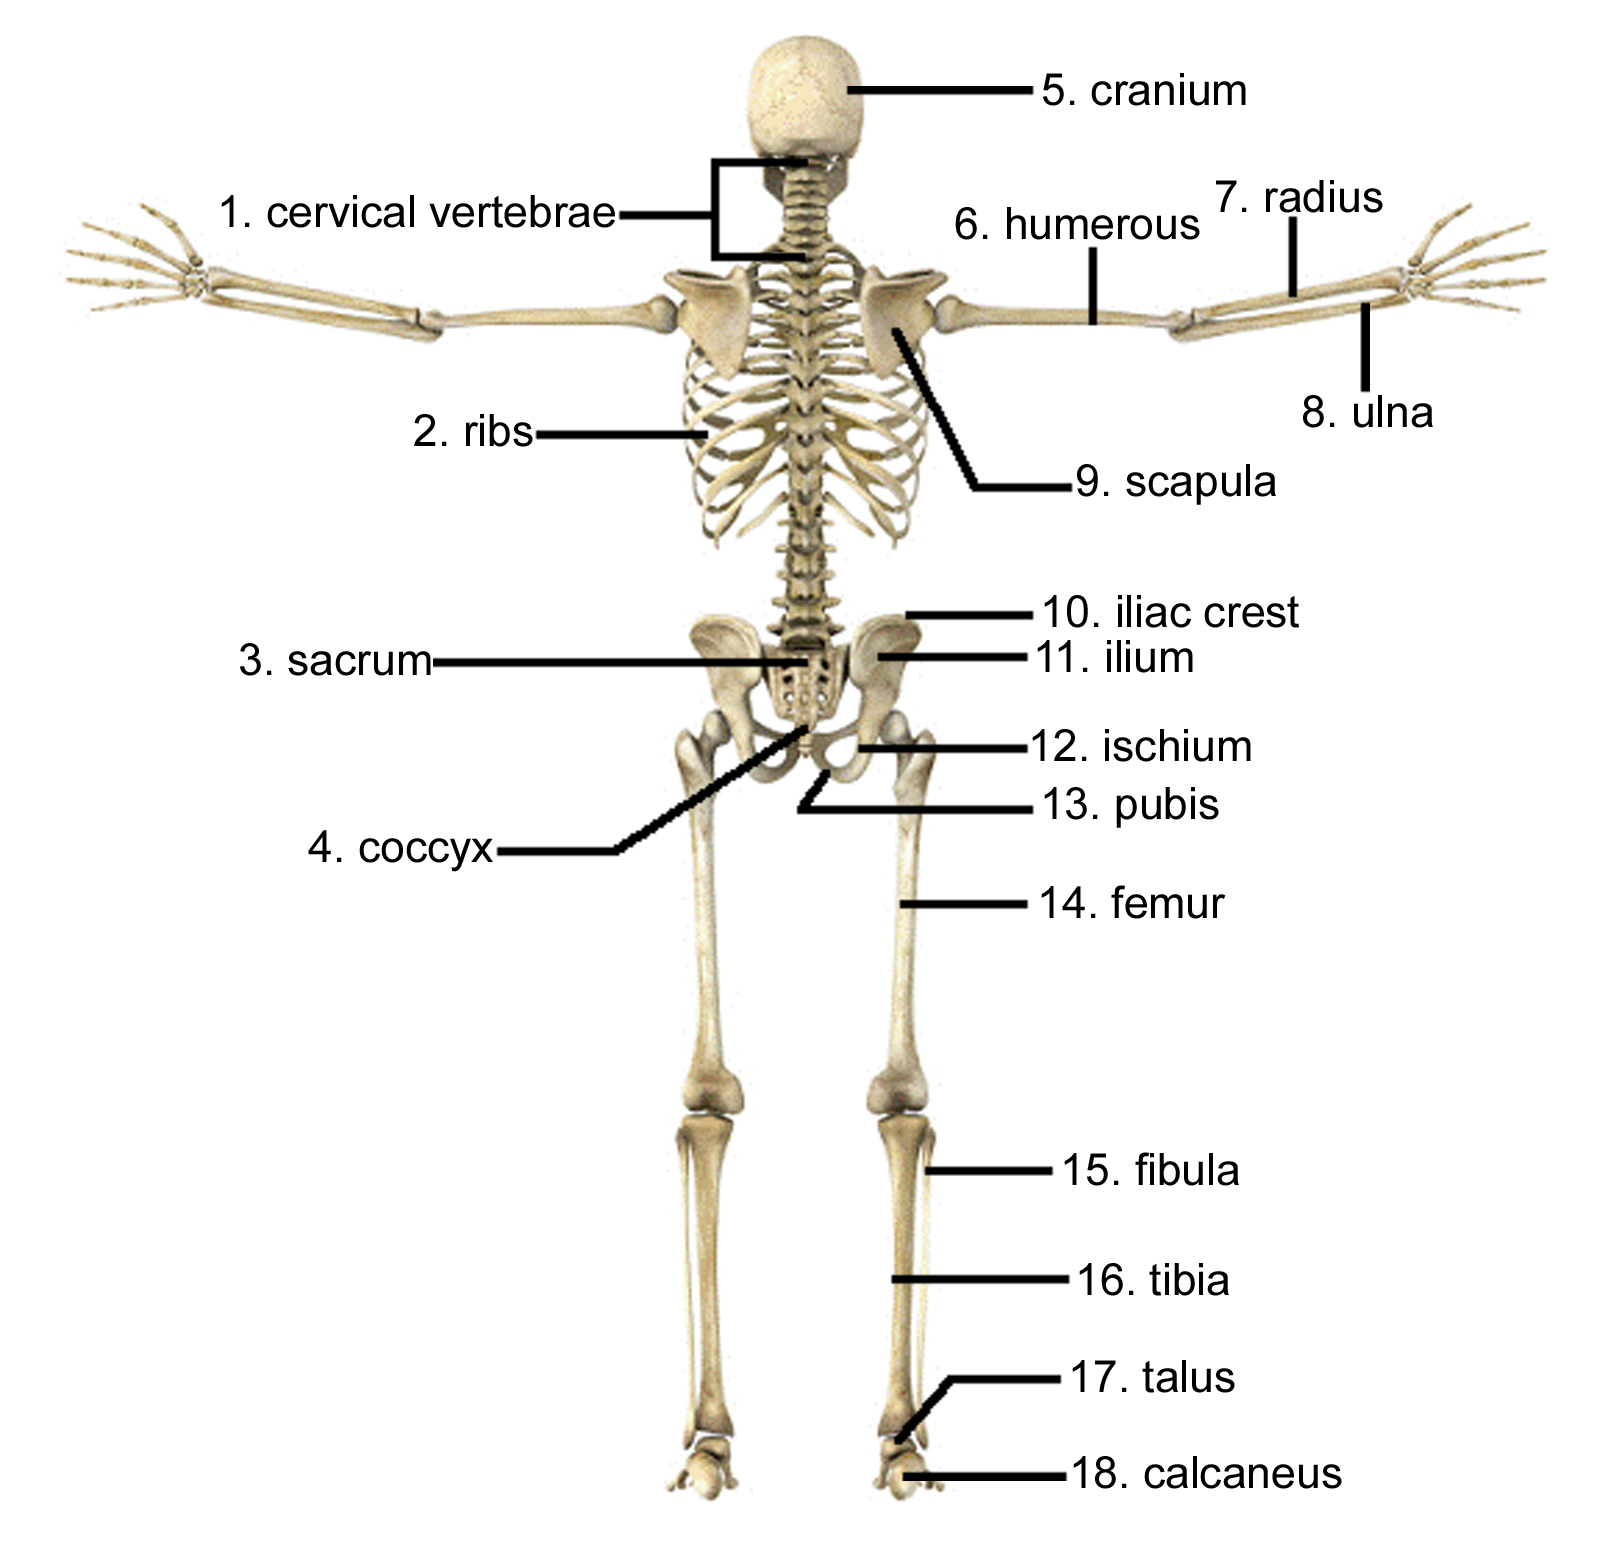 hight resolution of 1597x1564 draw and label the human skeleton system pictures skeleton arm